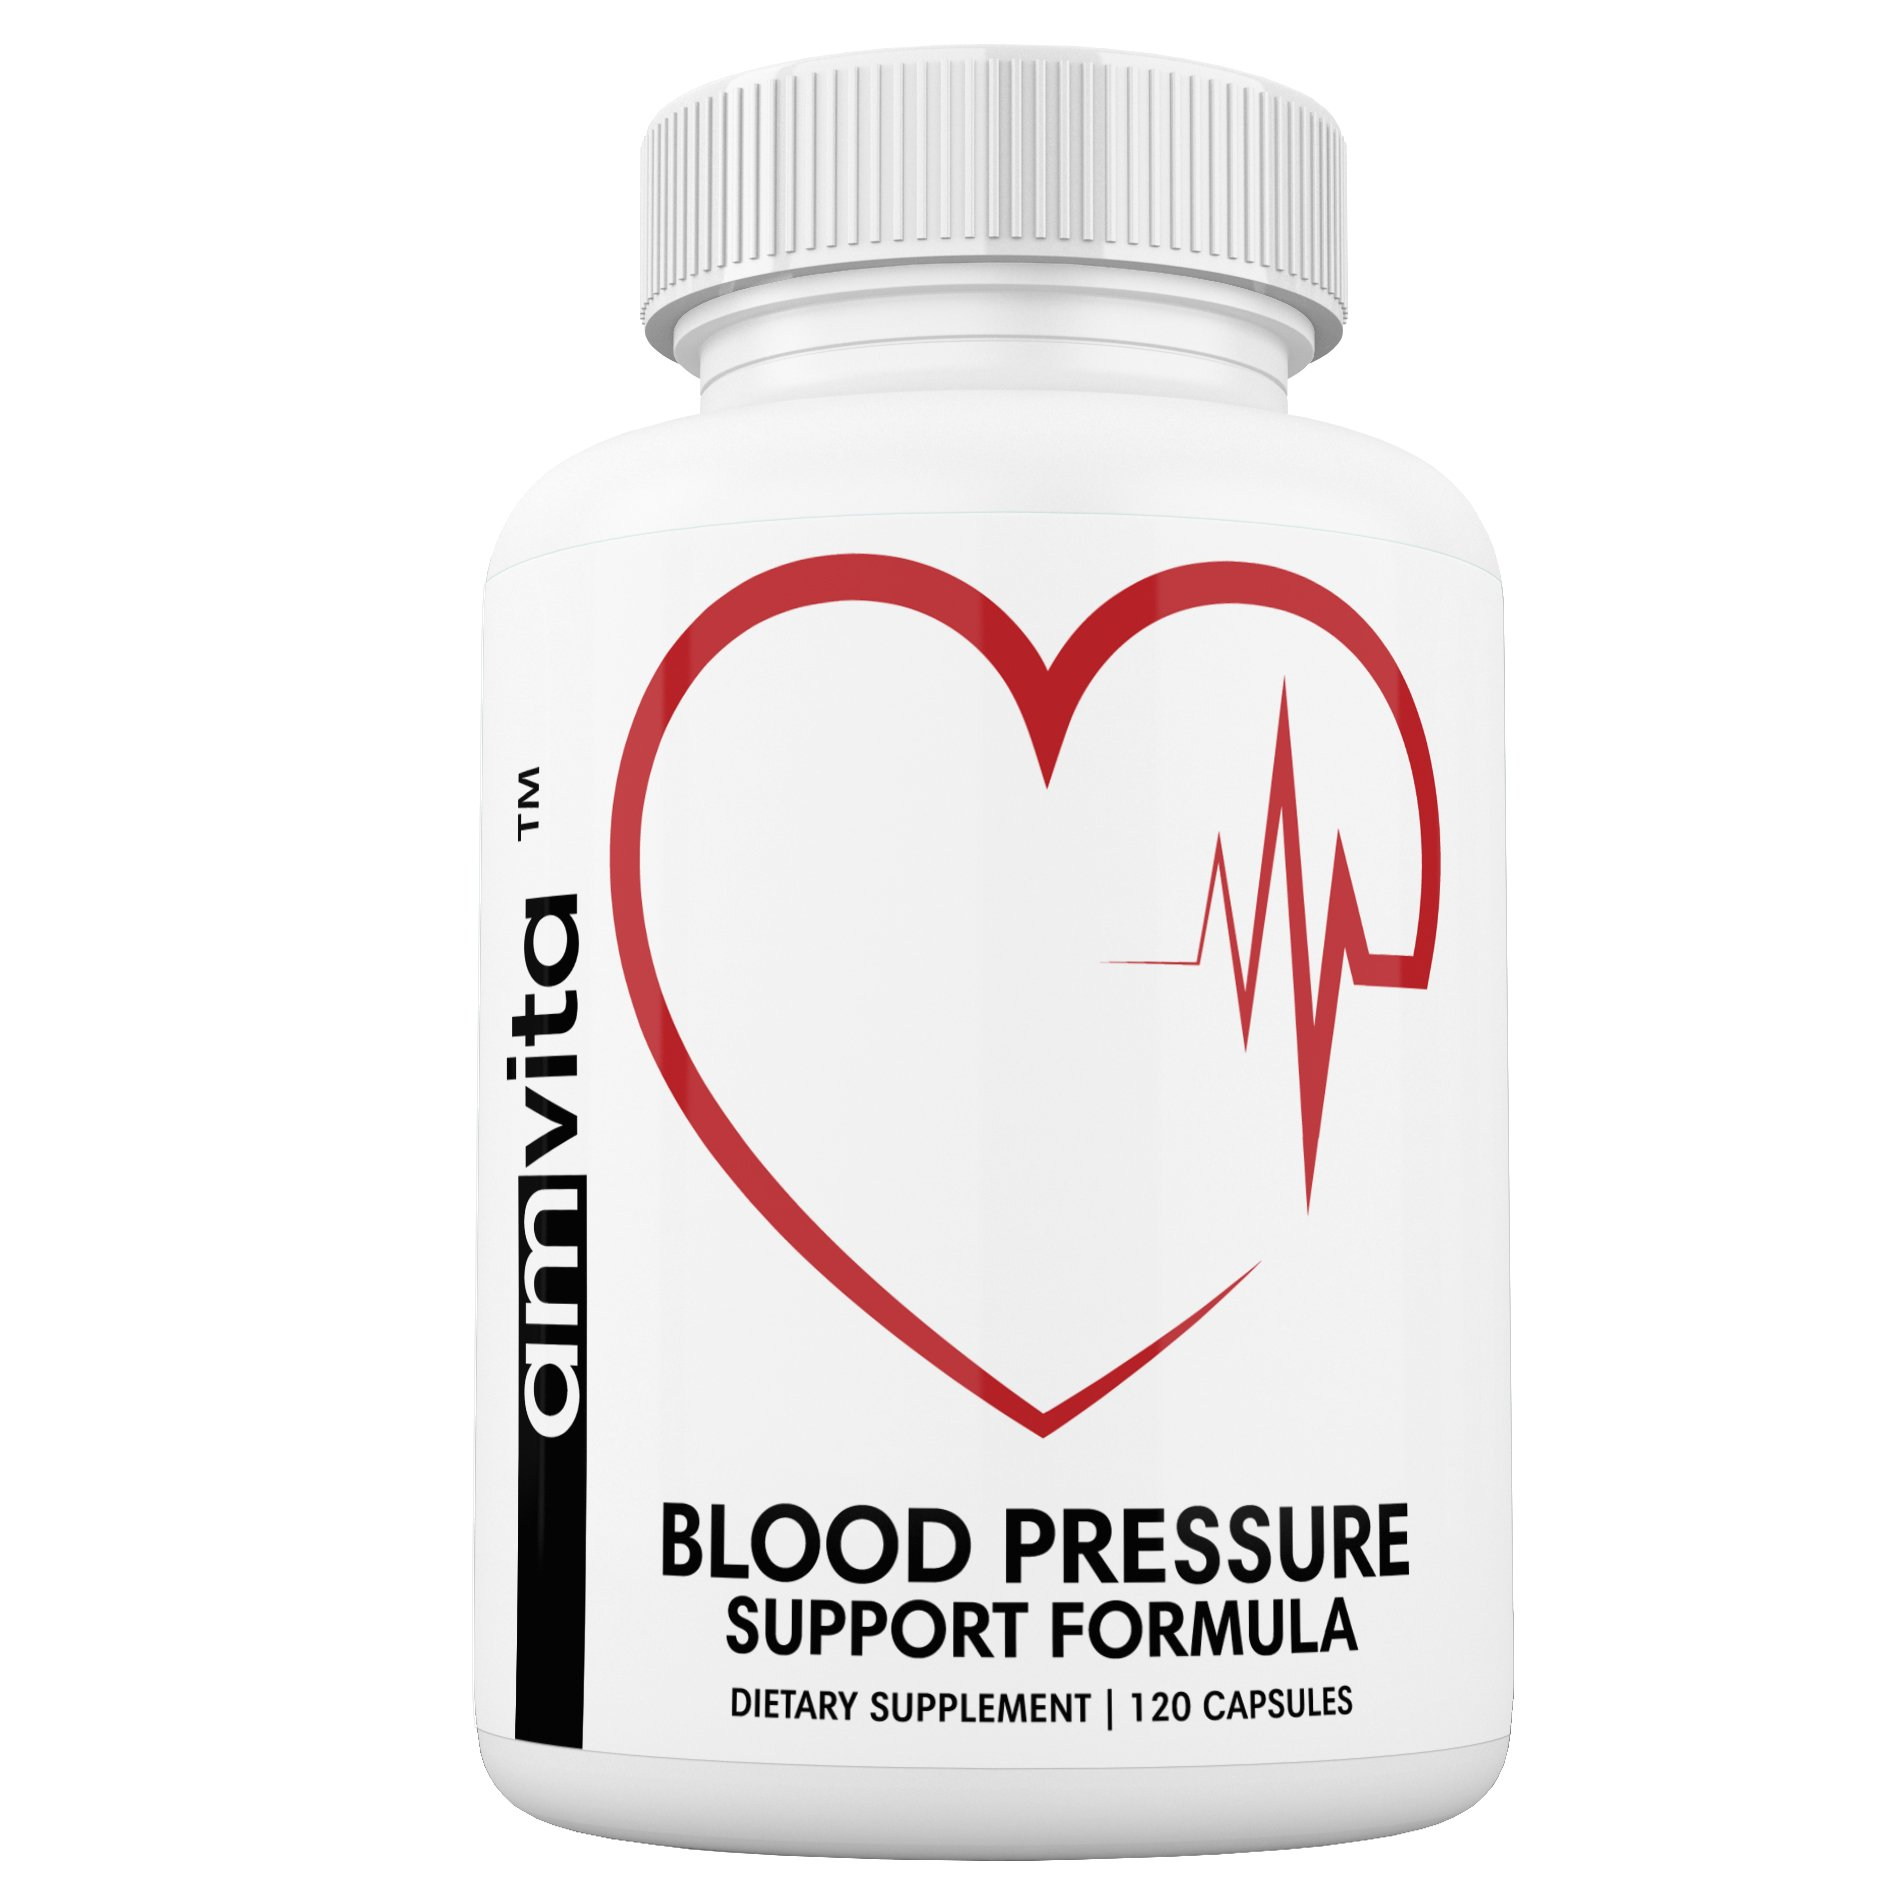 Premium Blood Pressure Support Supplement with Vitamins, Hawthorn, Niacin, Garlic and Hibiscus - Promotes Healthy Blood Pressure - Made is USA - 120 Capsules